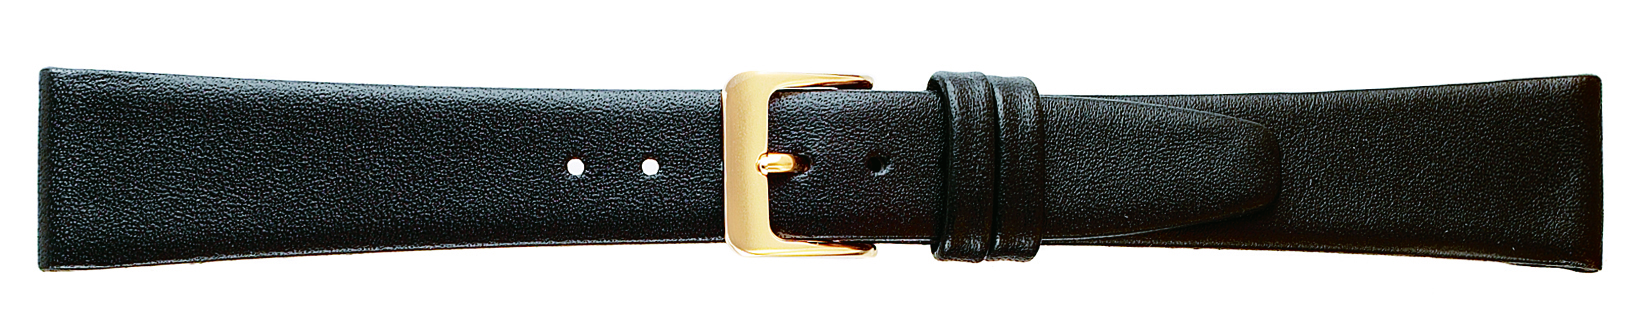 18MM Leather Band Black Smooth Calf Long-0